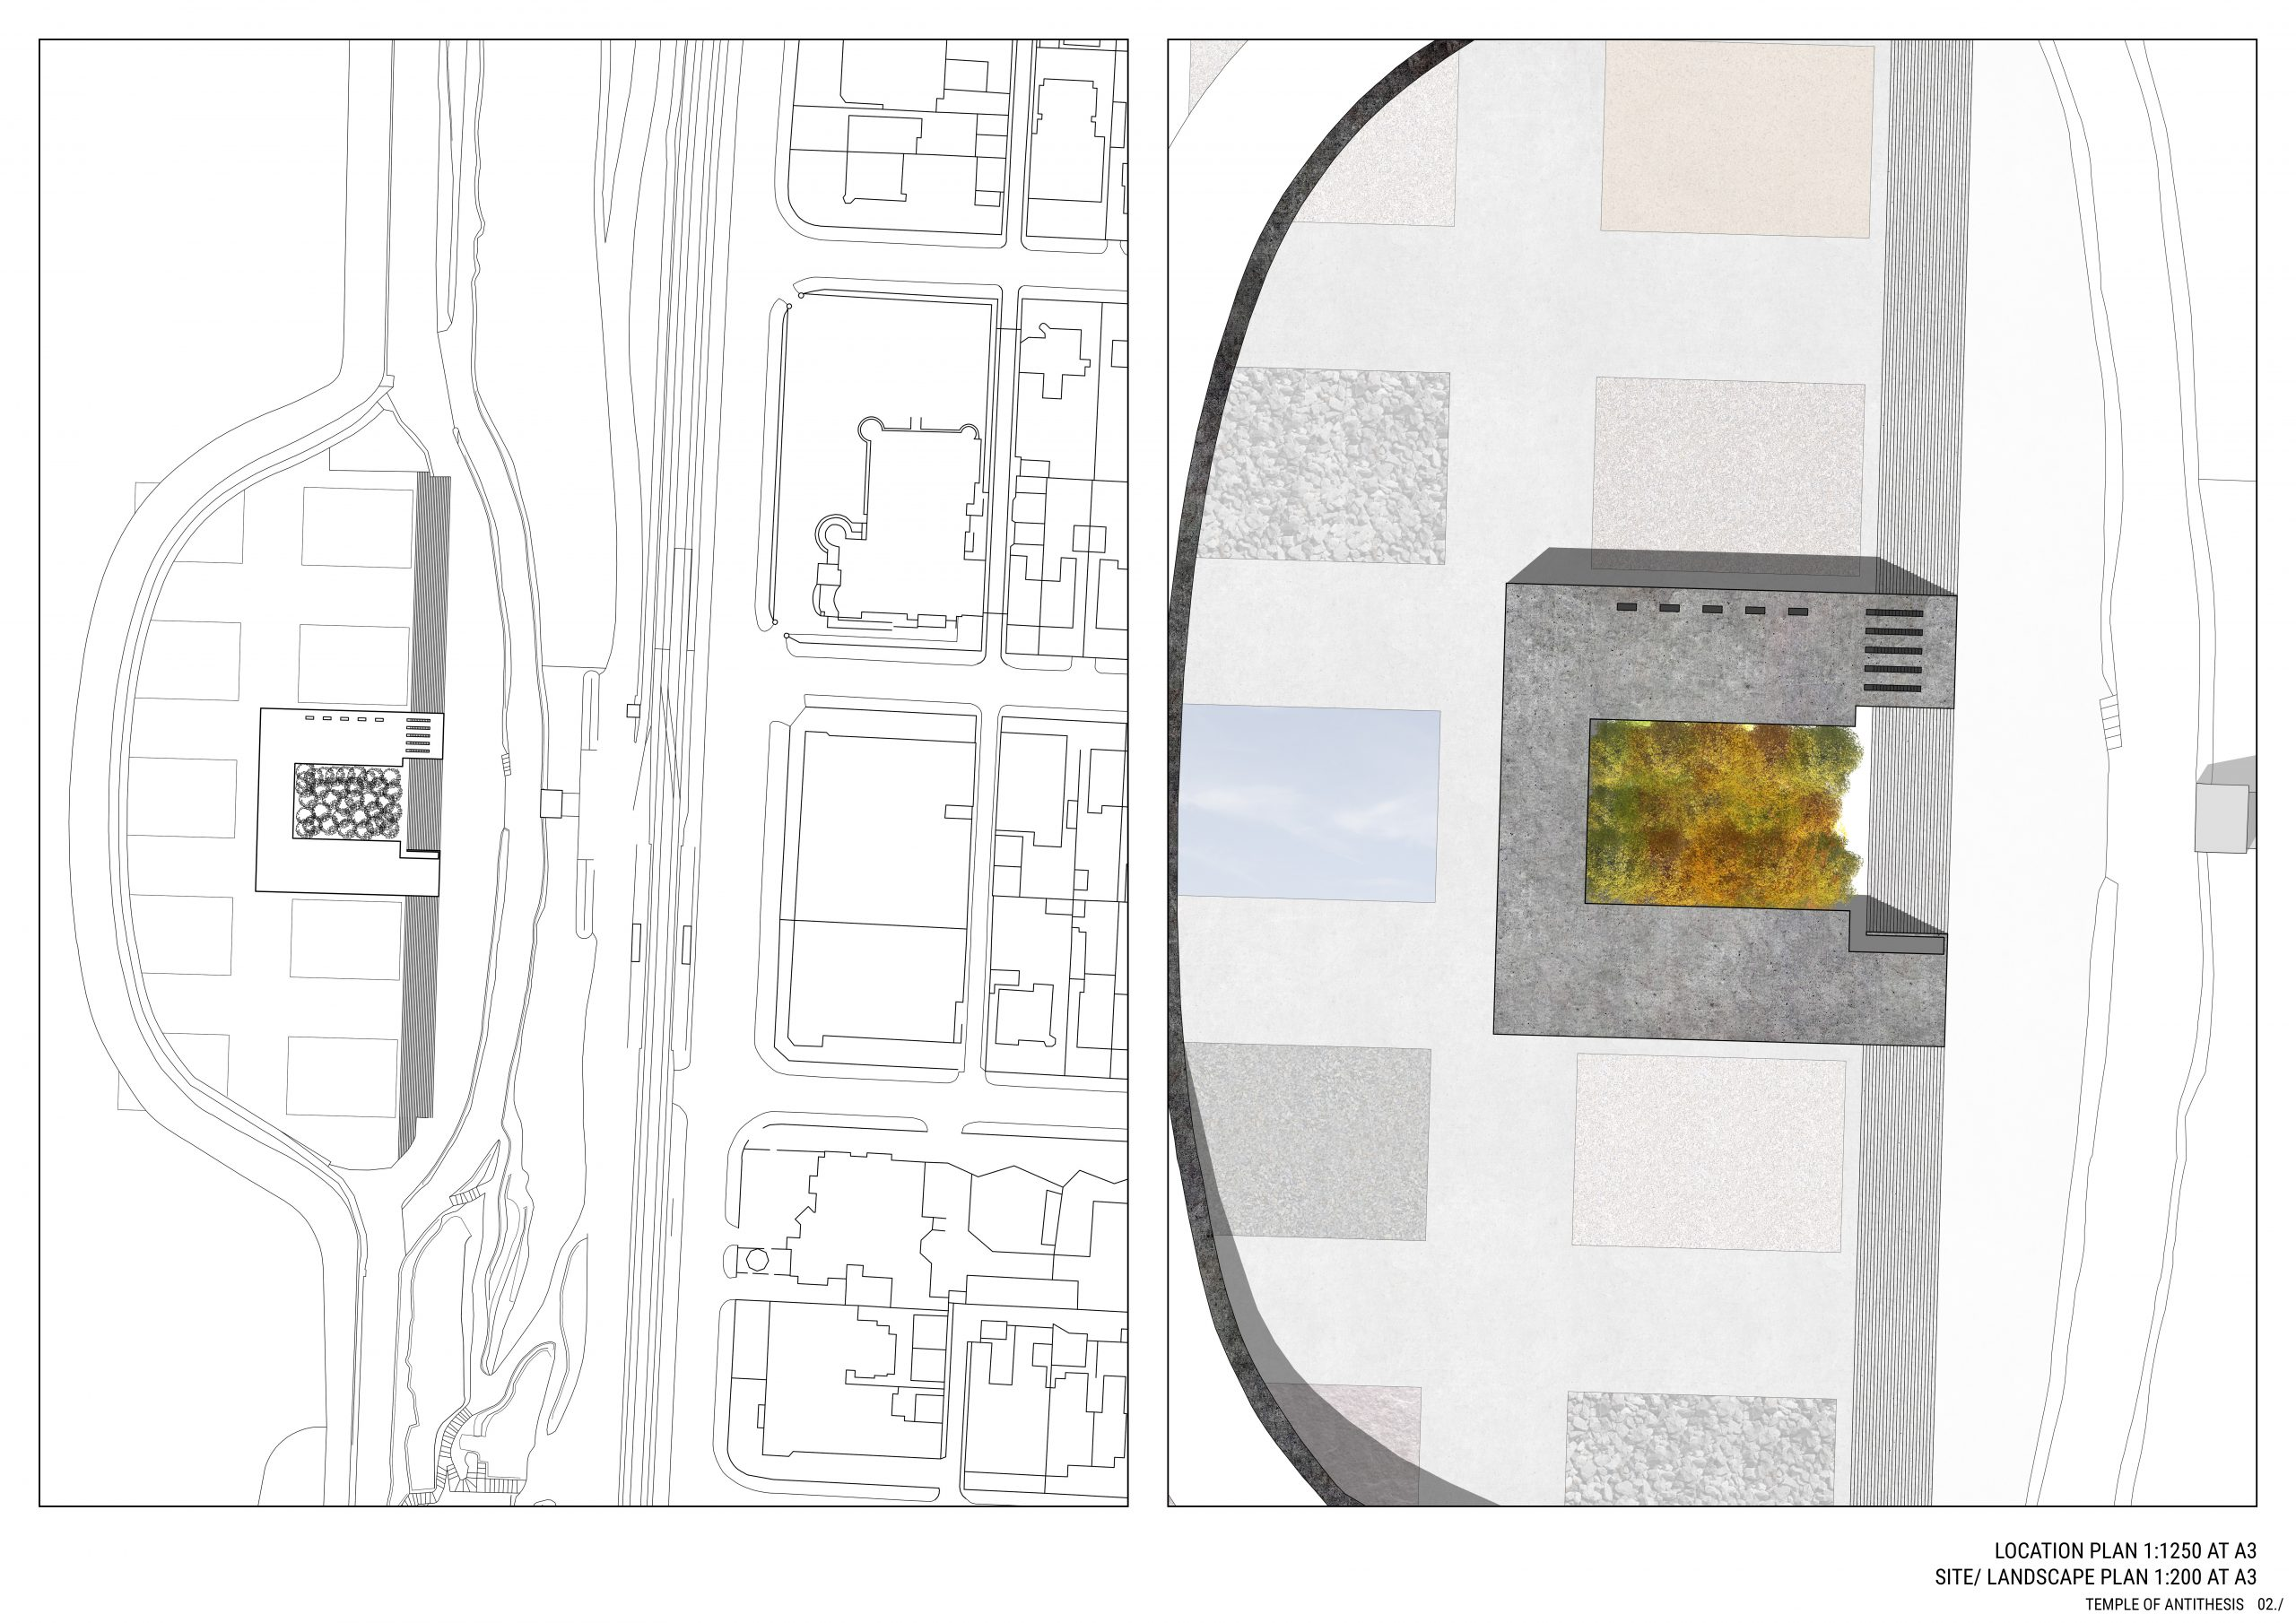 Site Location and Landscape Plan. 02./ Image